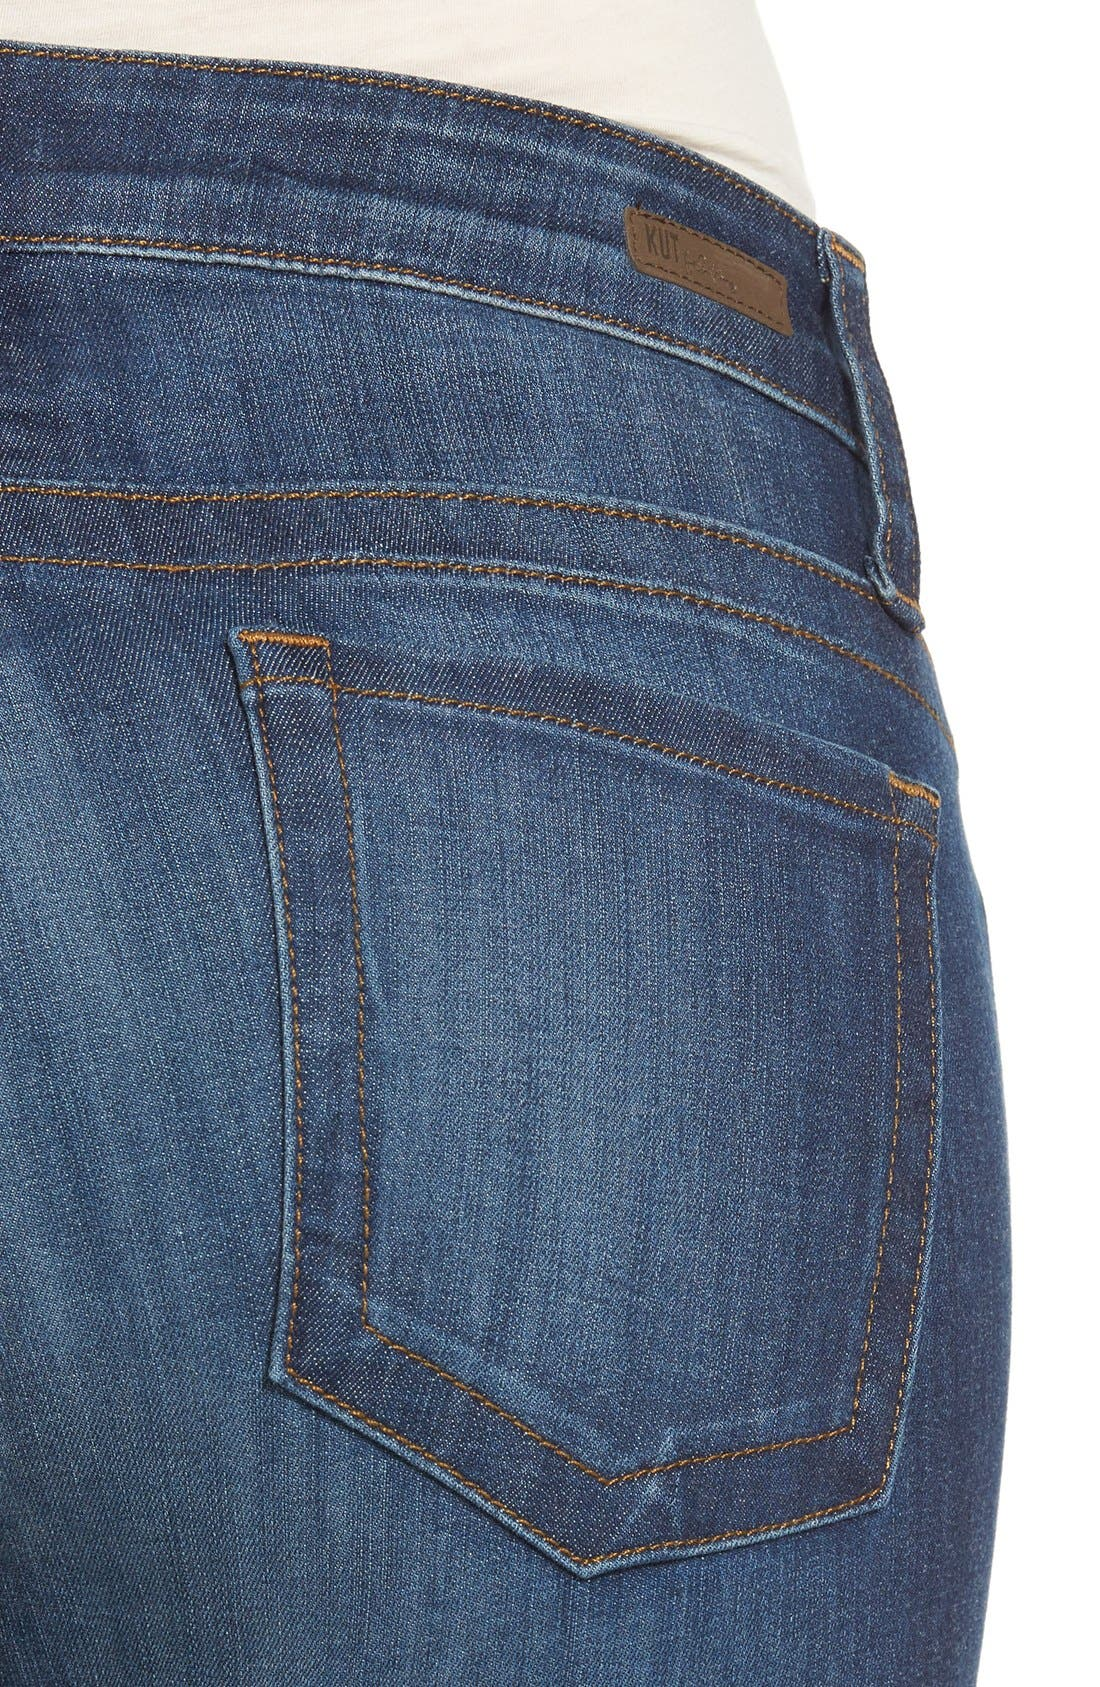 Alternate Image 4  - KUT from the Kloth 'Stevie' Stretch Straight Leg Jeans (Admiration)